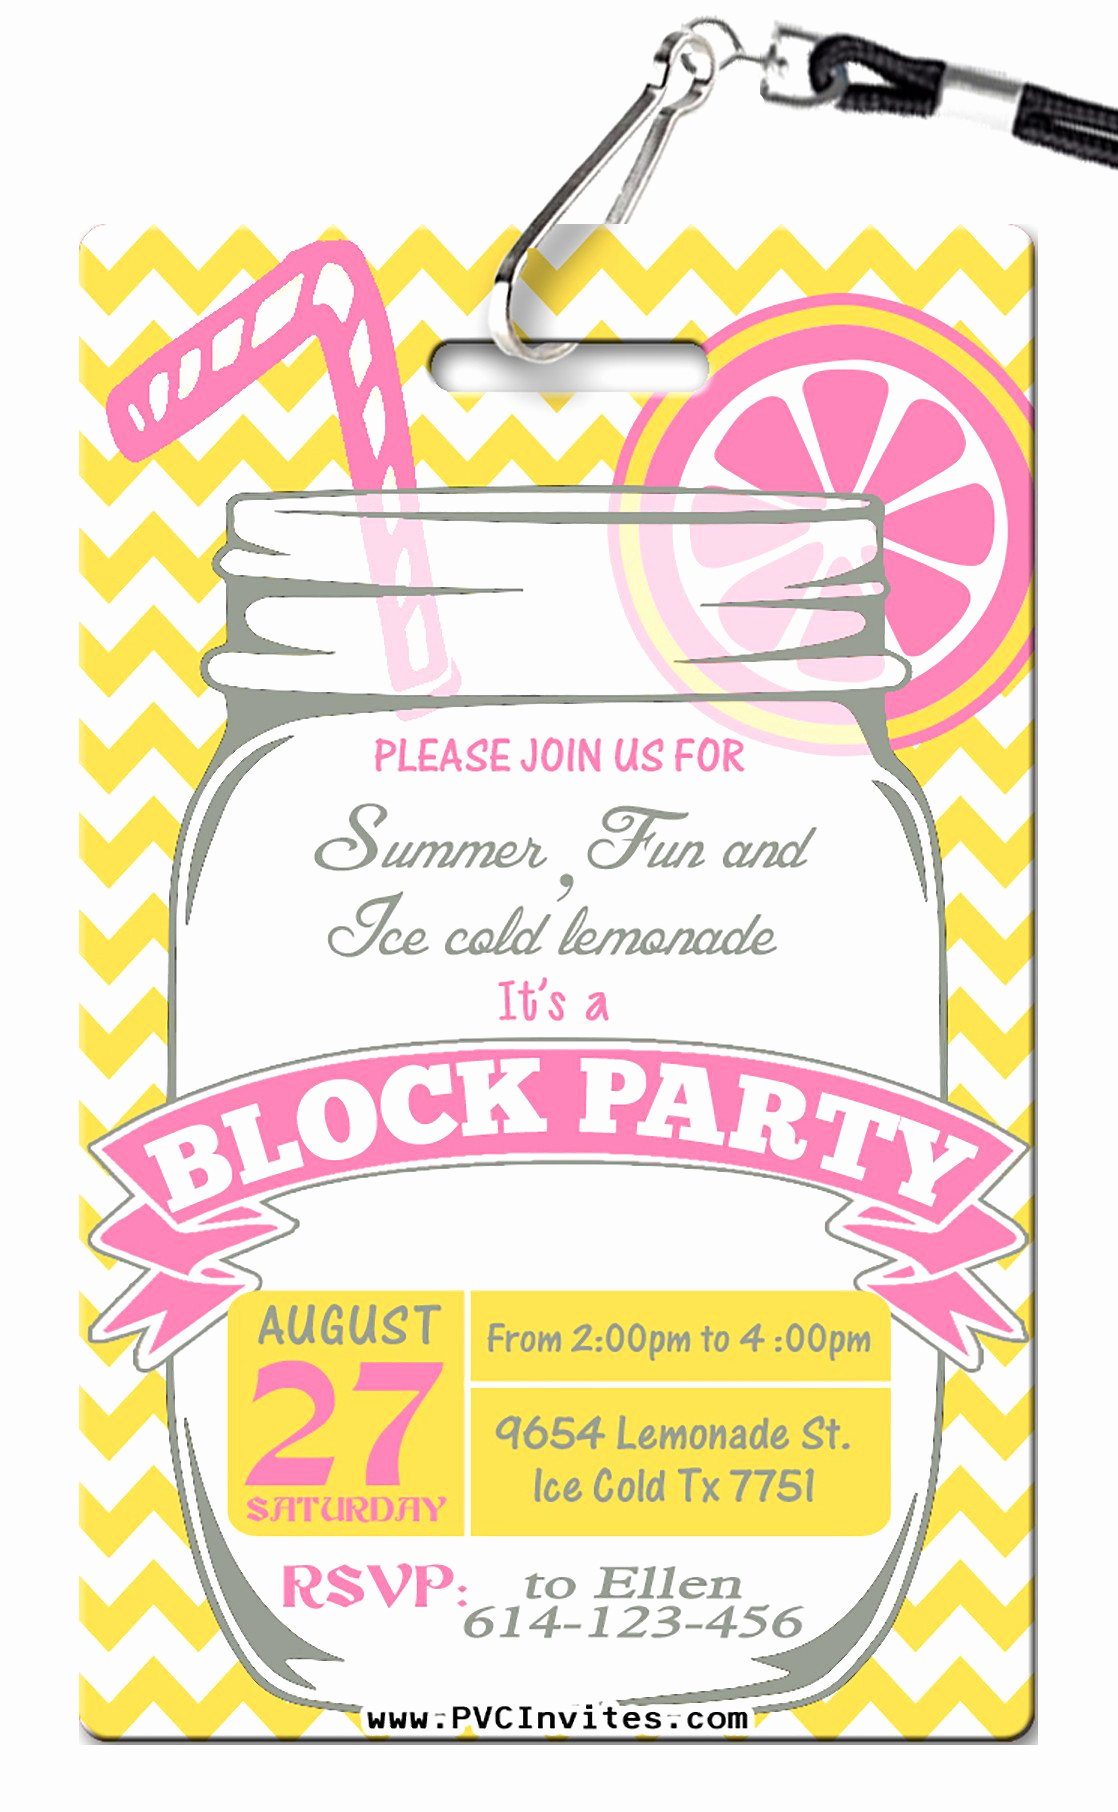 Block Party Invitation Template Free Awesome Block Party Birthday Invitations Pvc Invites Vip